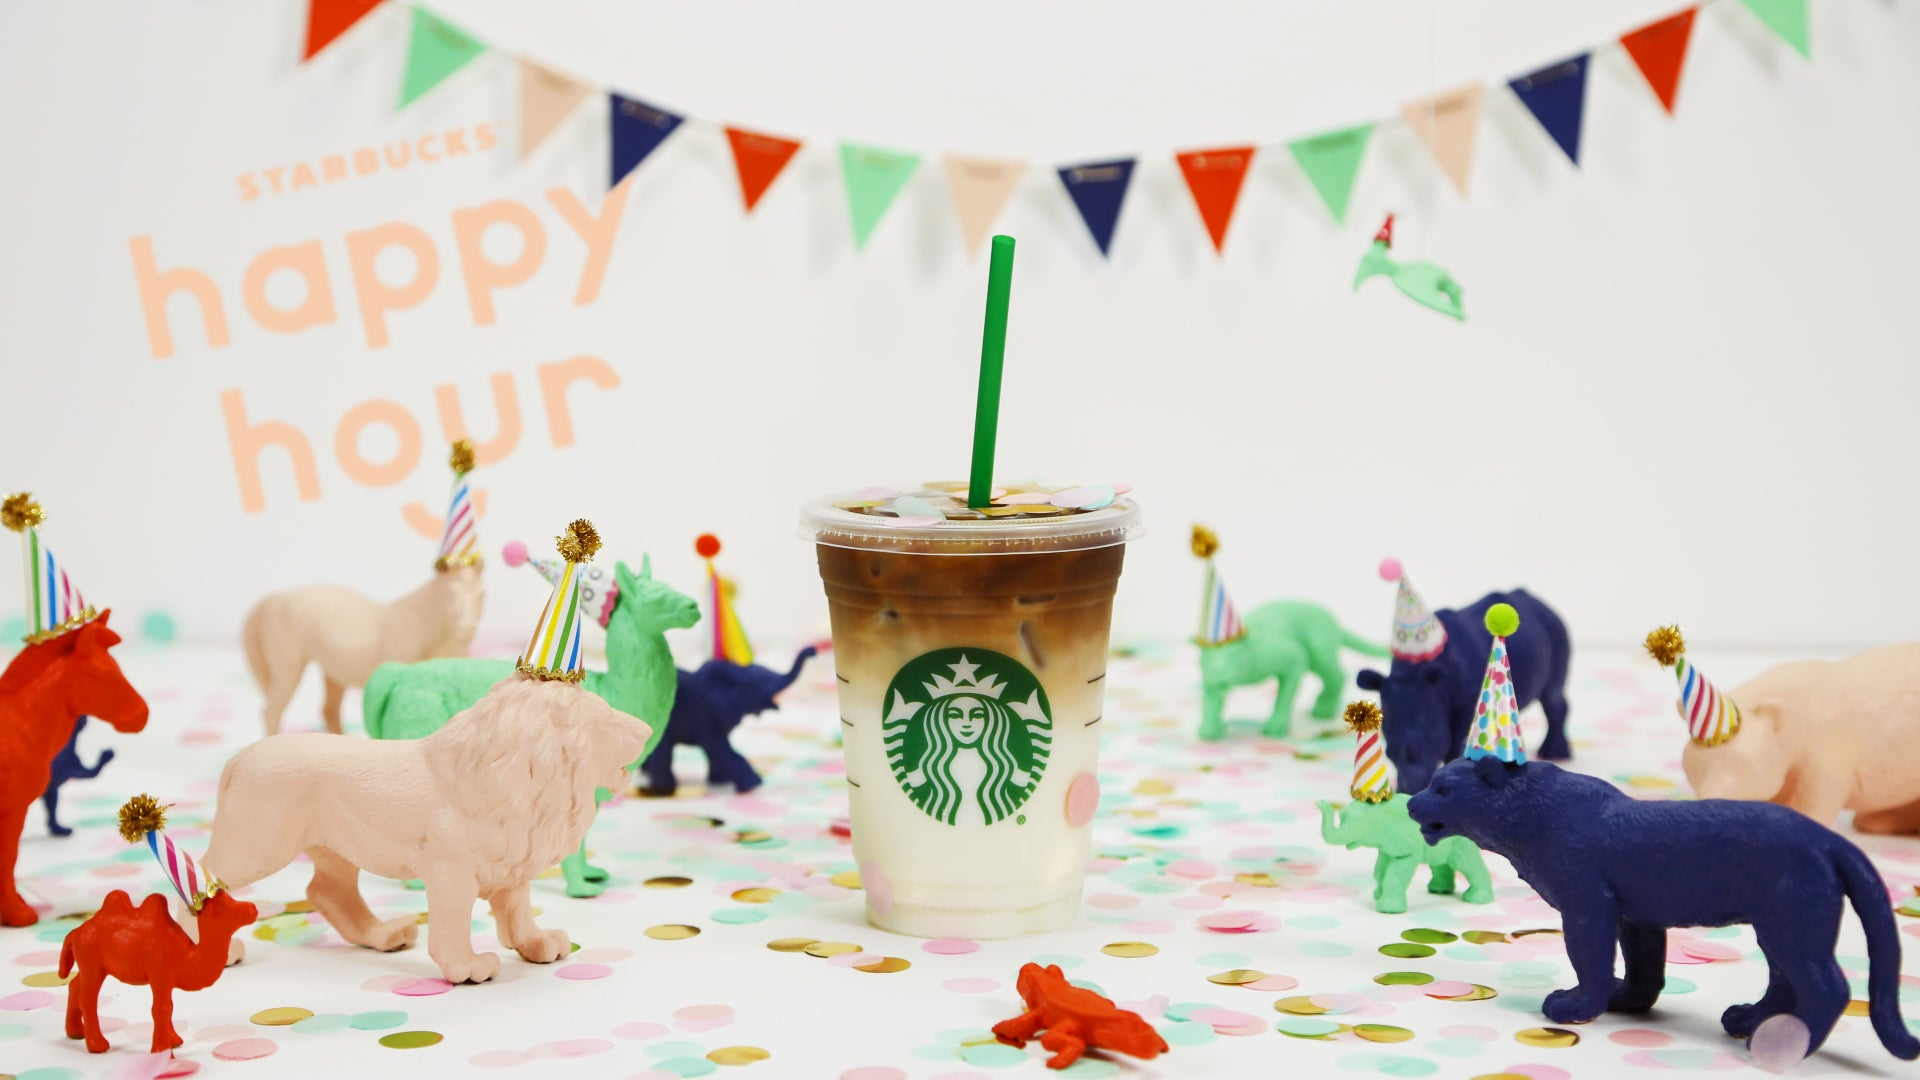 Why Did Starbucks Change This Frappuccino Promotion? -- The Motley Fool